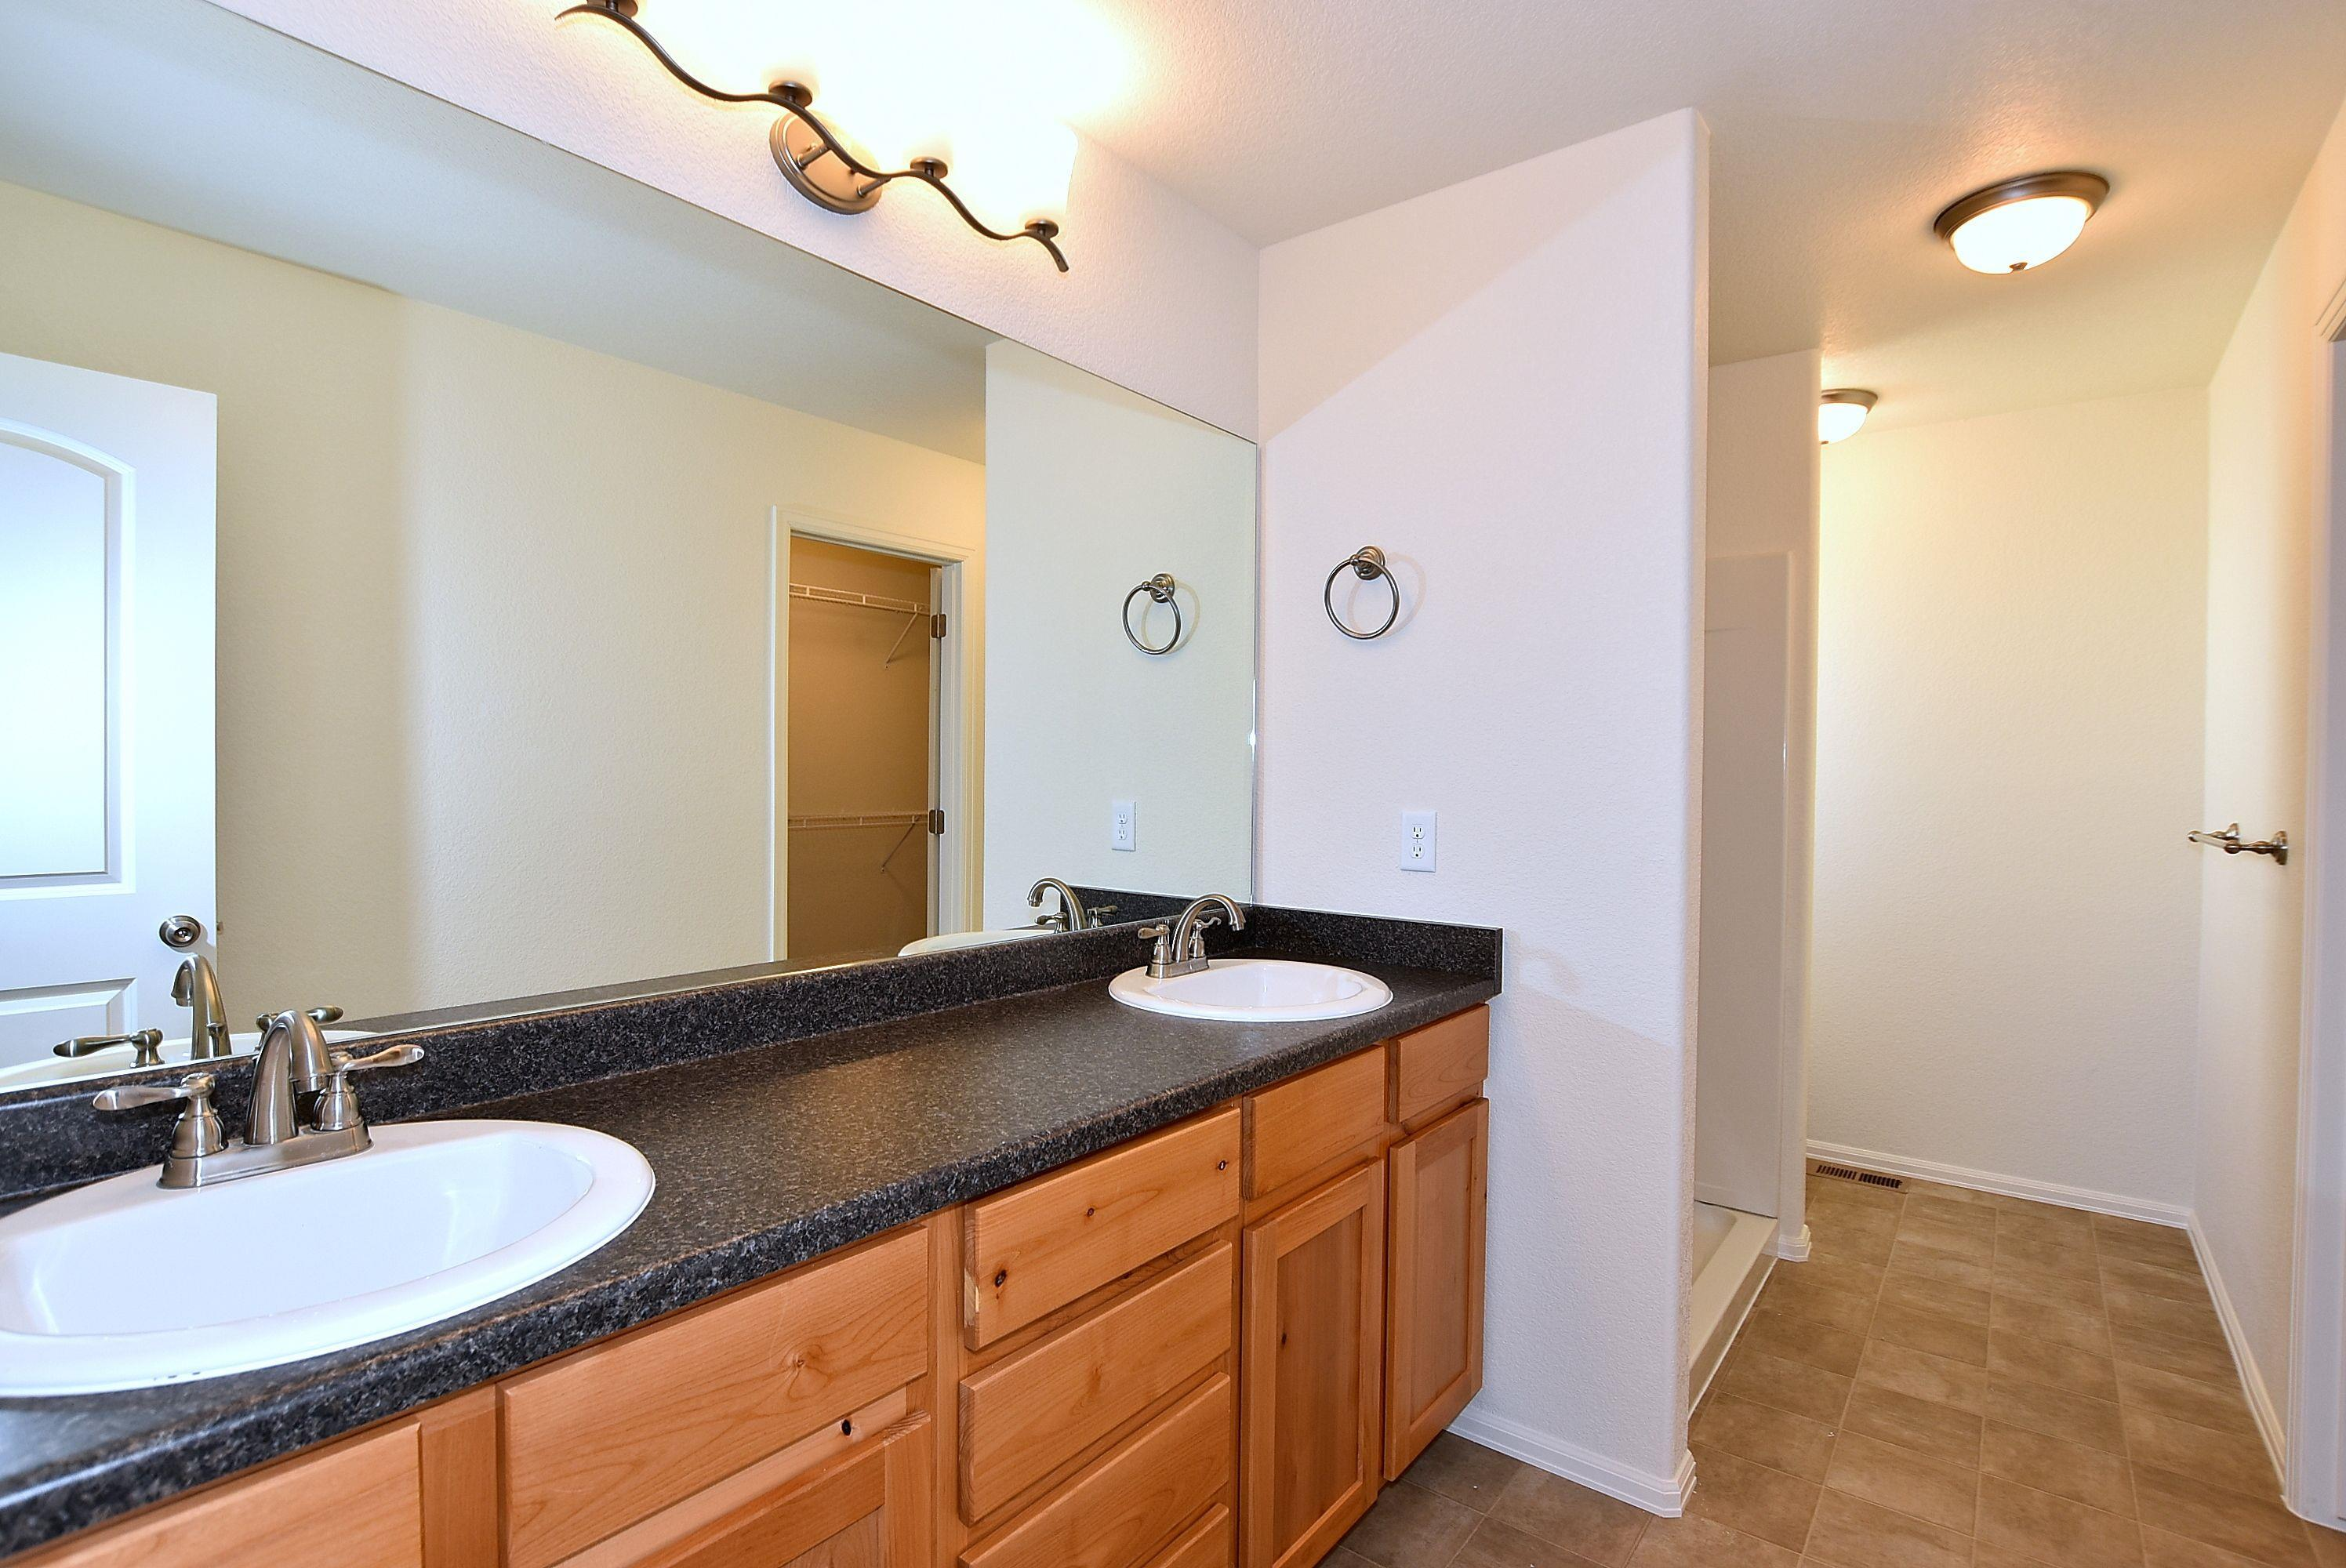 Bathroom featured in the Maryland By Journey Homes in Fort Collins-Loveland, CO